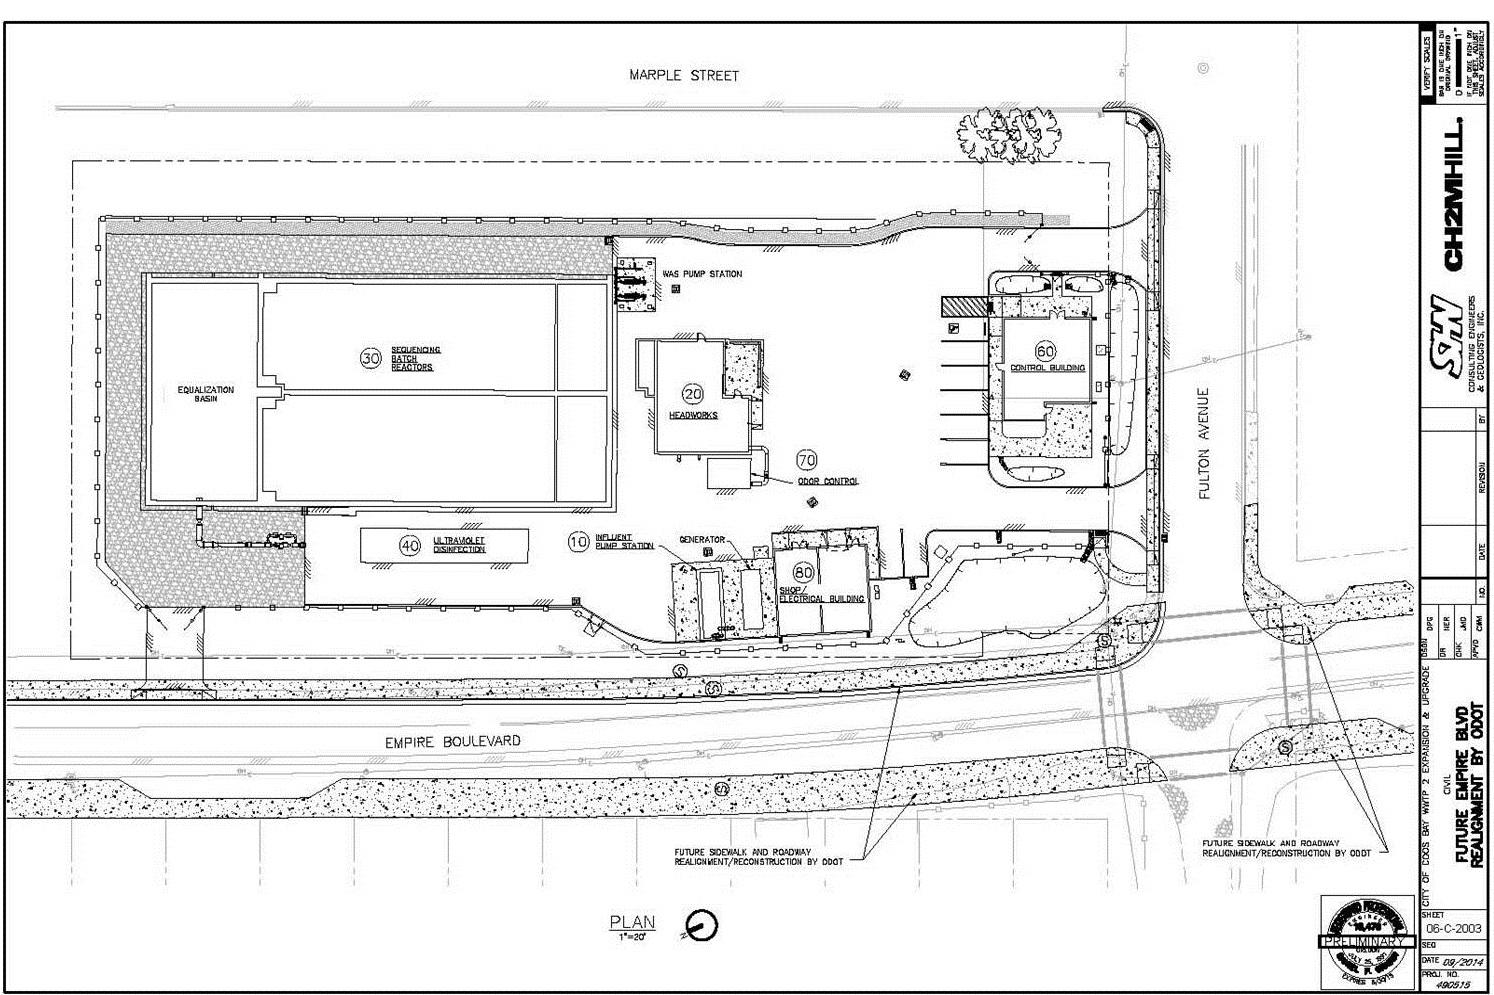 Preliminary site plan for construction